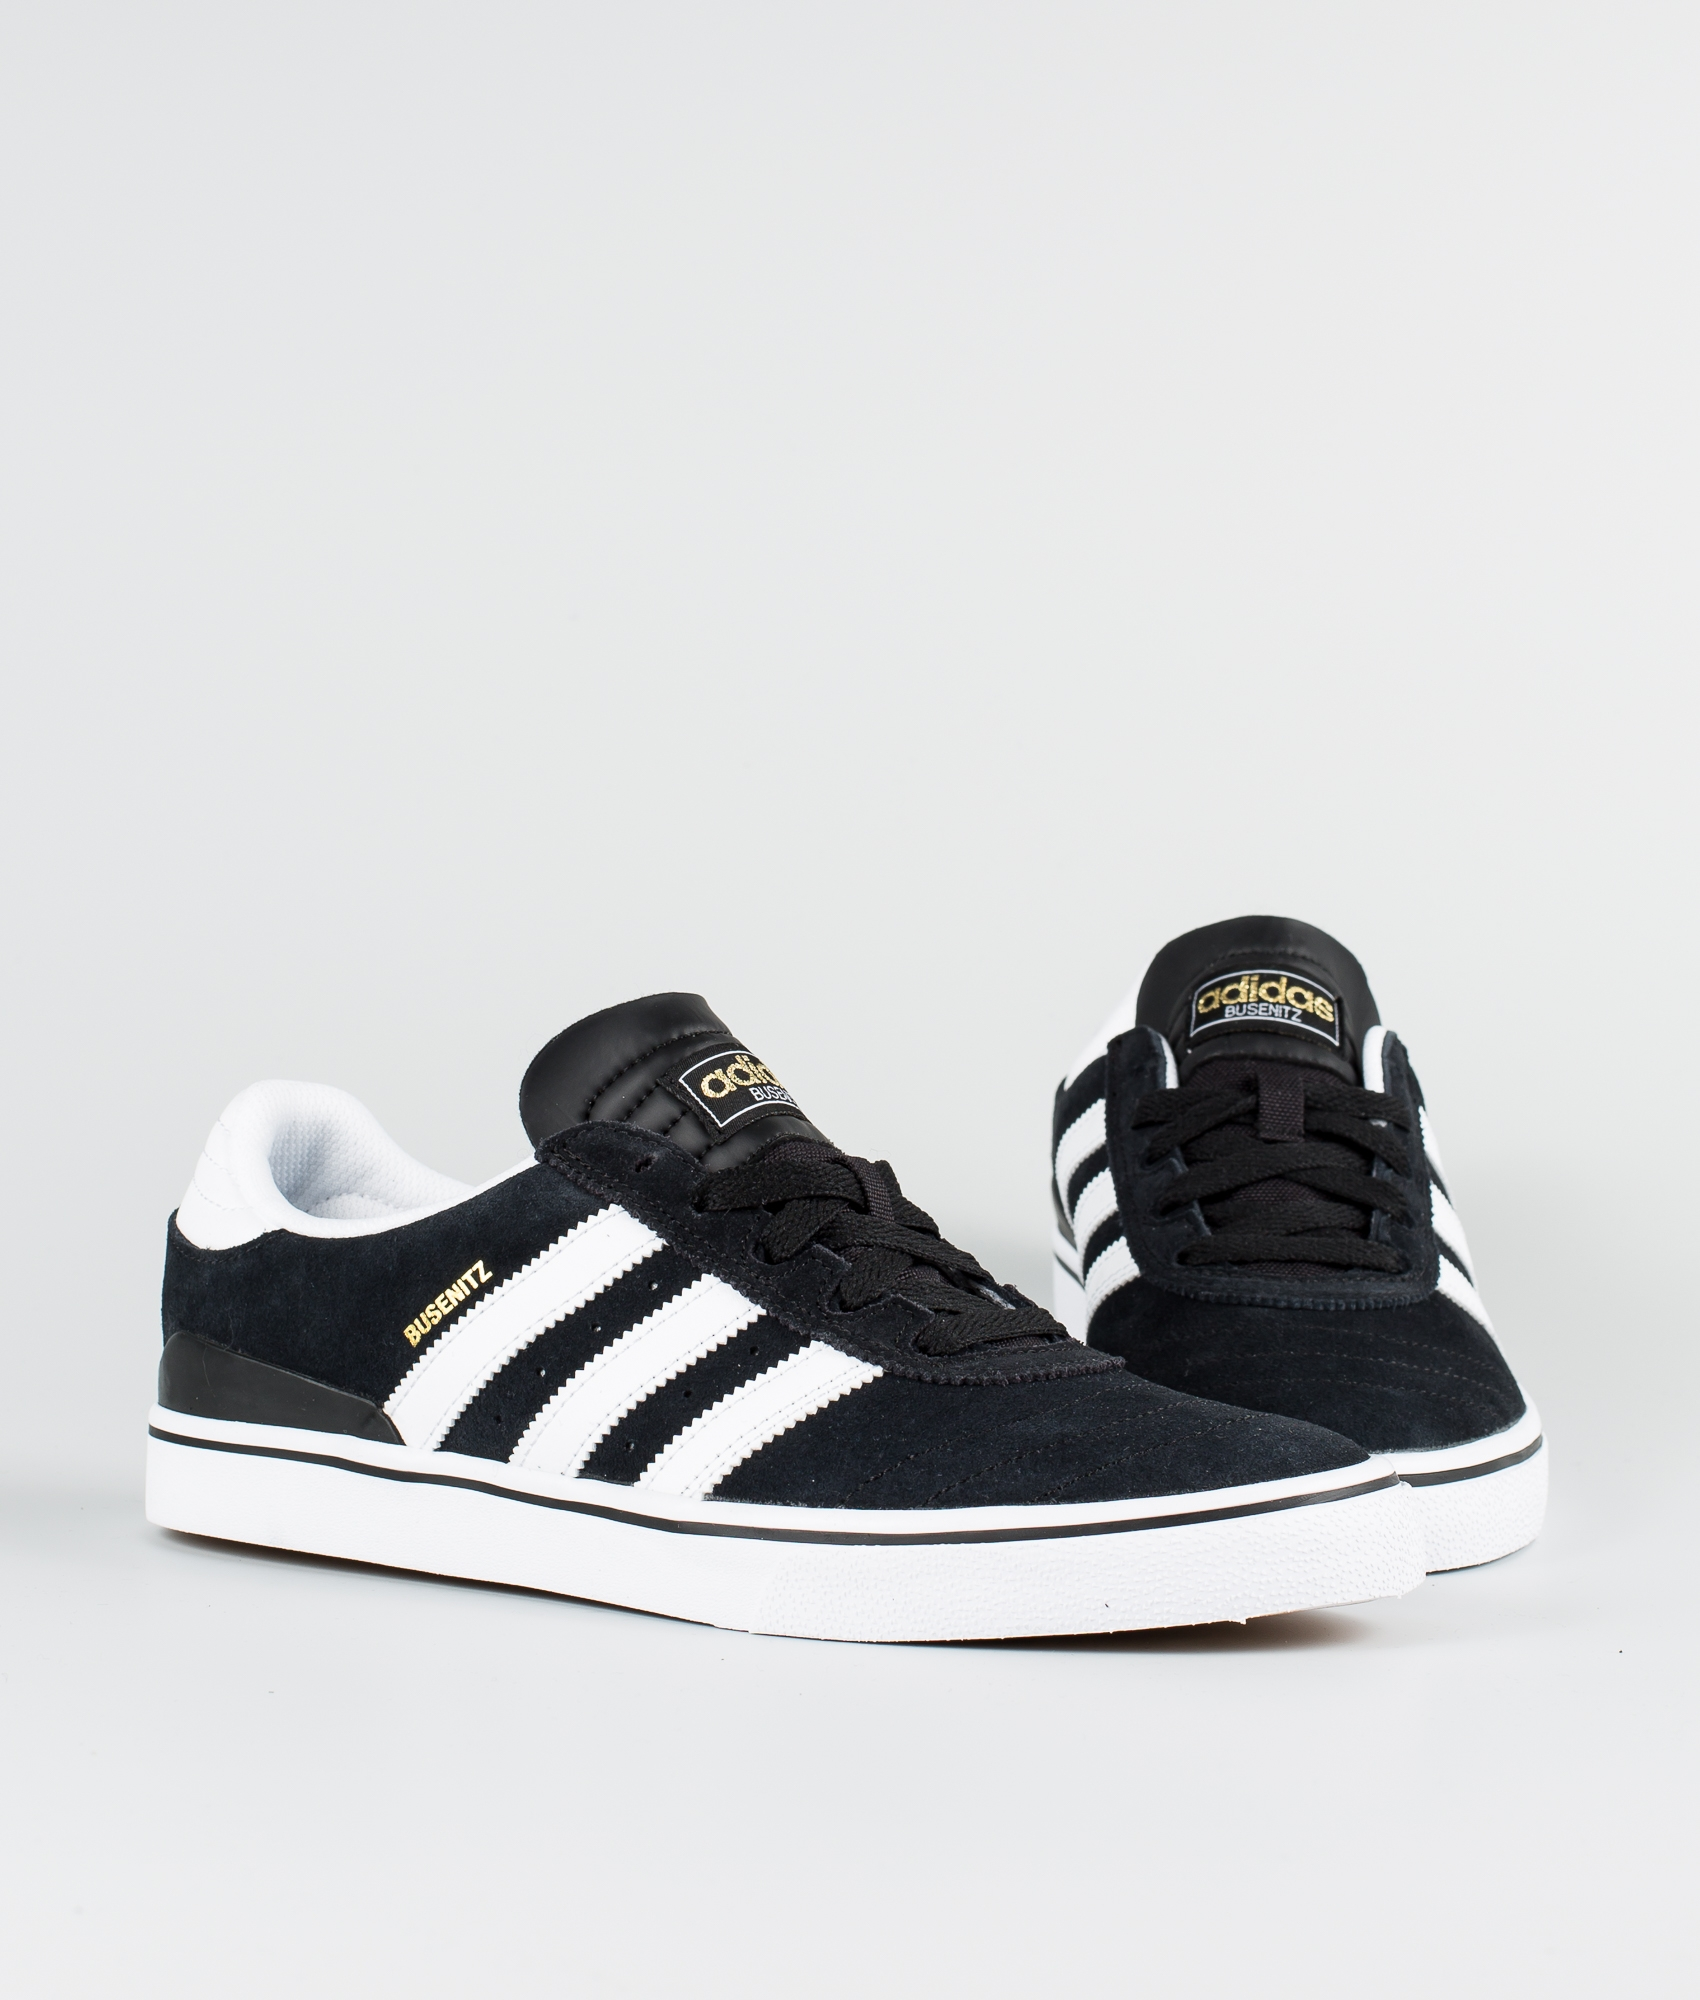 Adidas Skateboarding Busenitz Vulc Shoes Black1Running WhiteBlack1